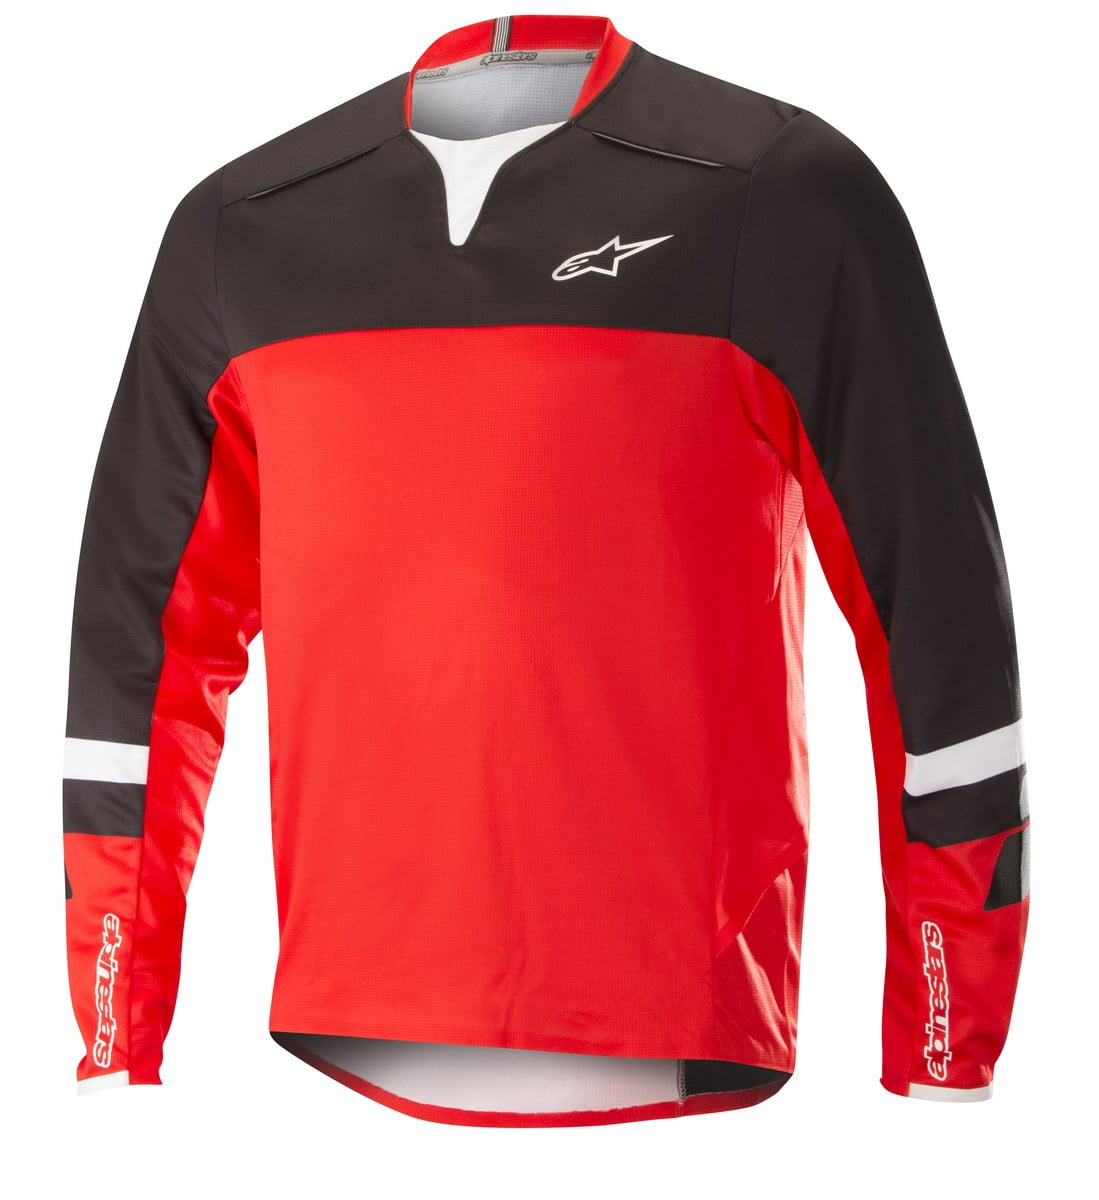 1766518_13_DROP PRO LS Jersey_BlackRed